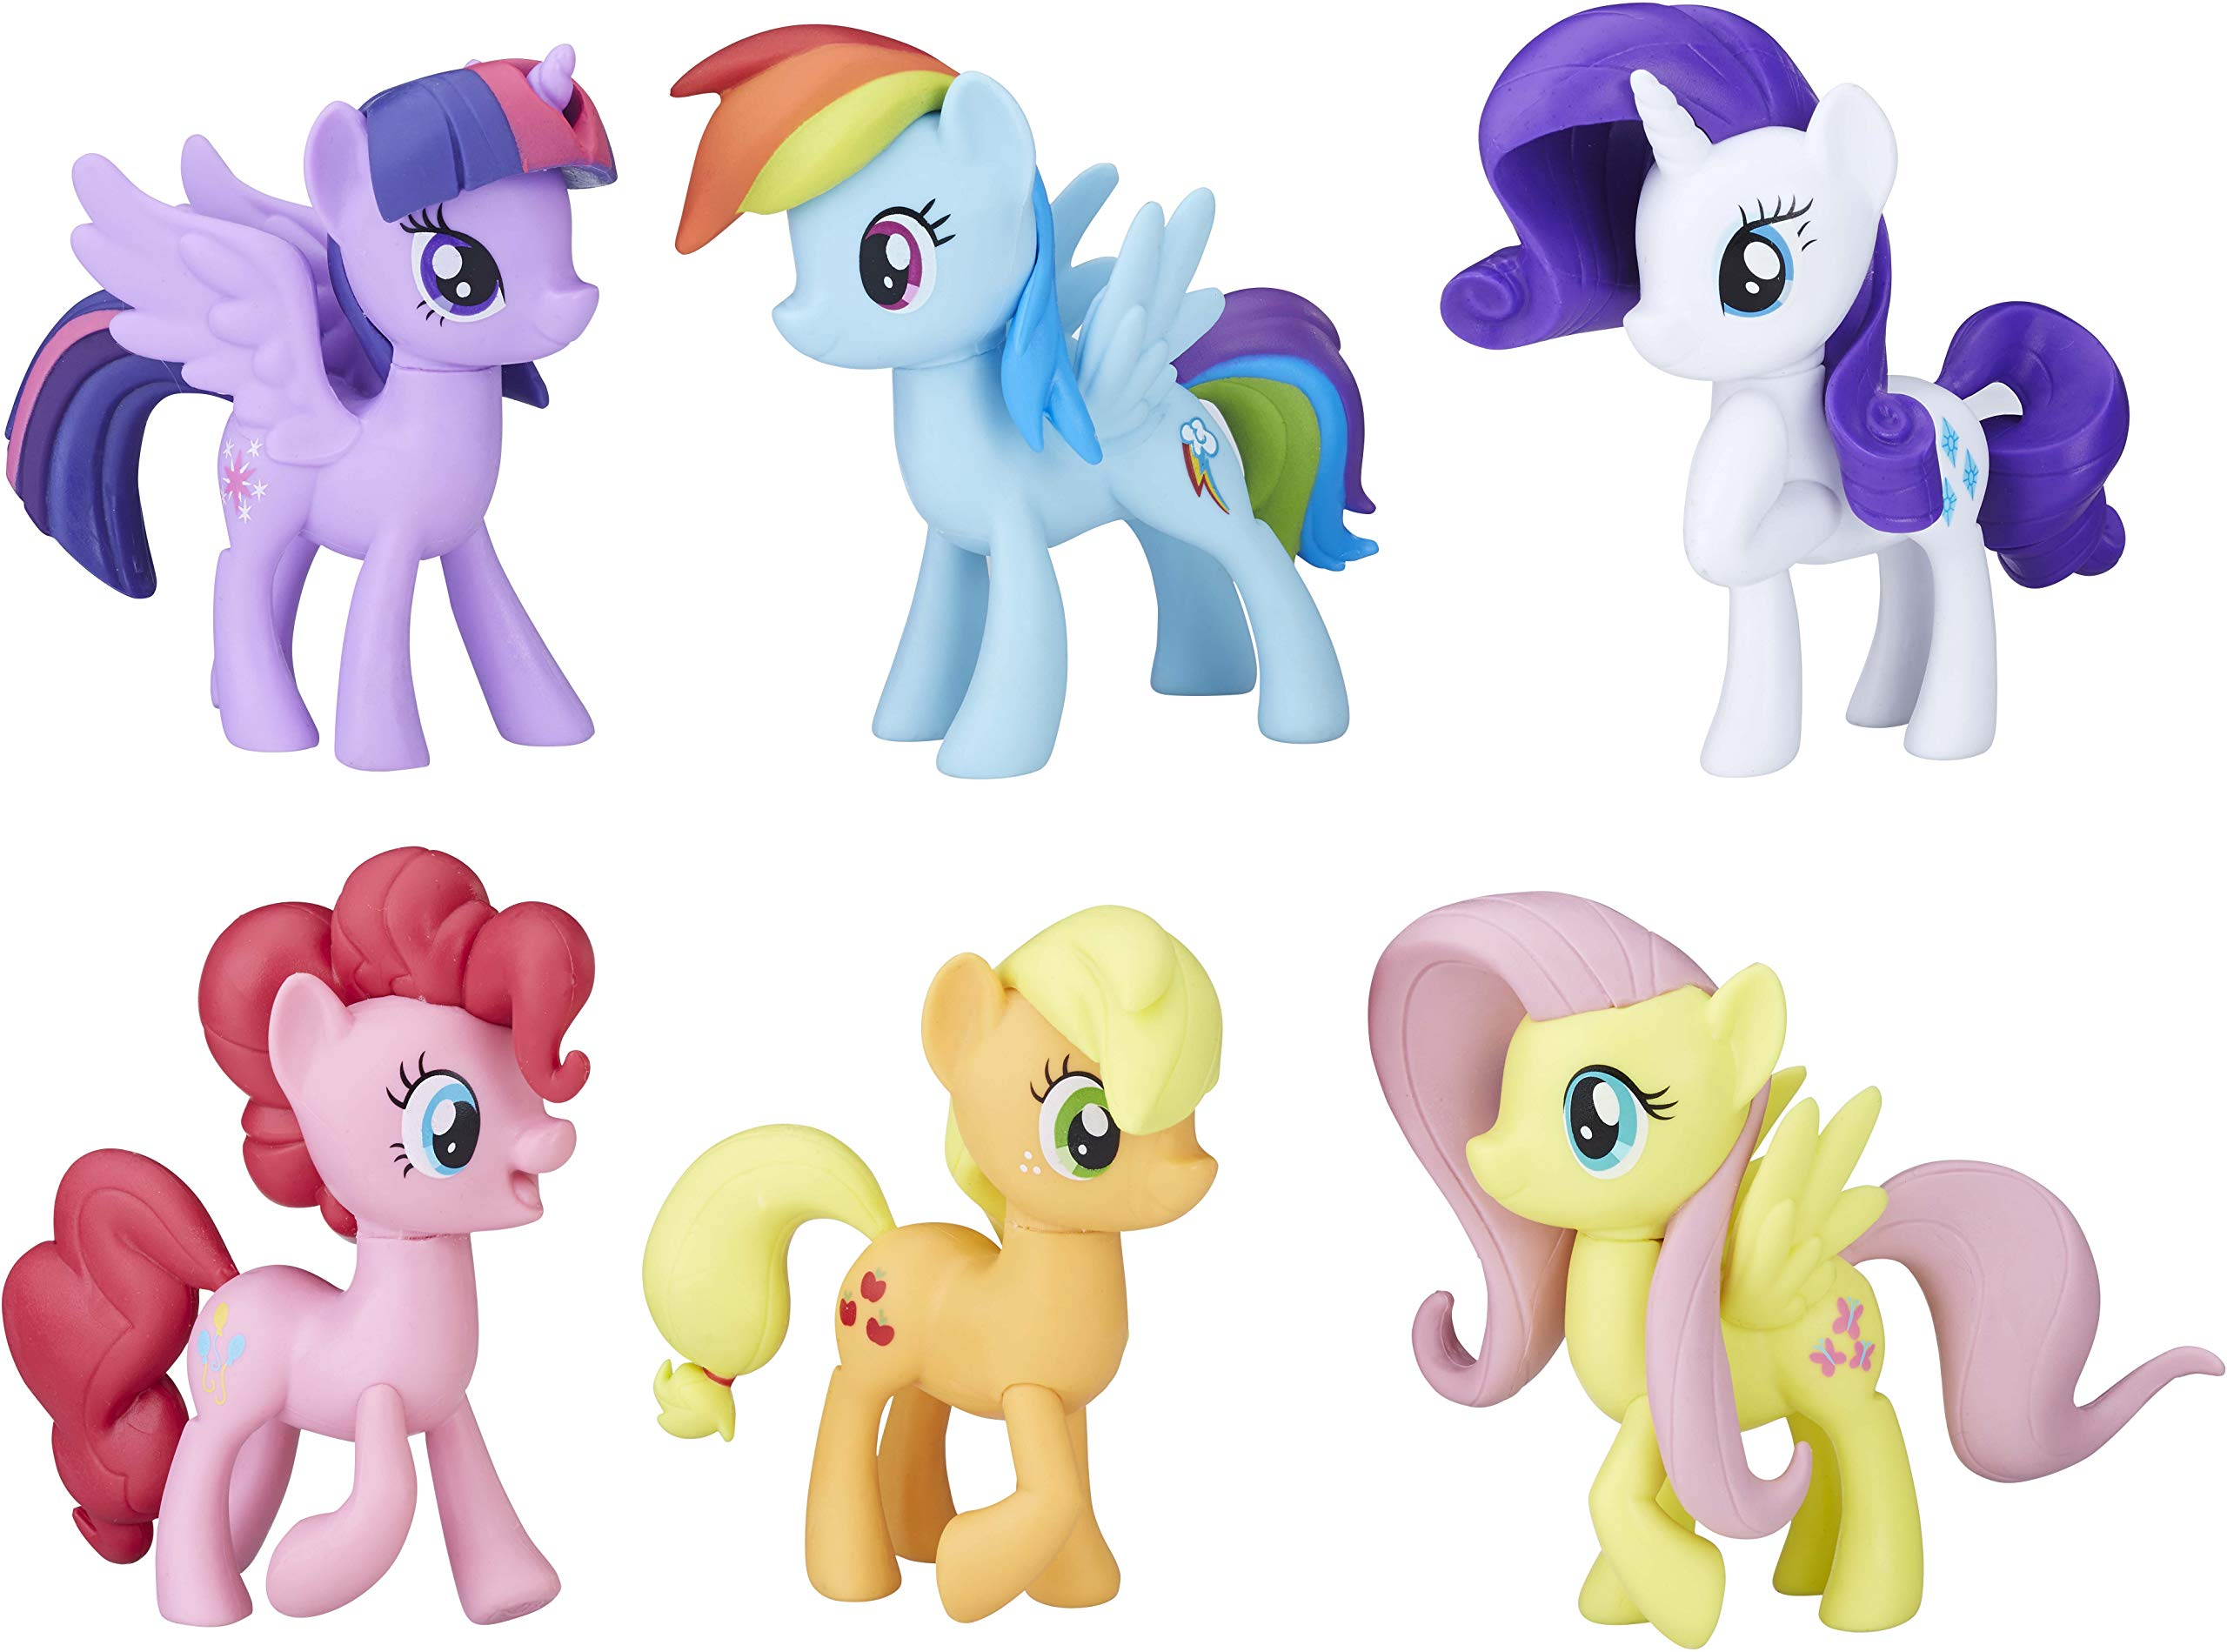 마이 리틀 포니: 식스 포니 인형 My Little Pony Toys Meet the Mane 6 Ponies Collection